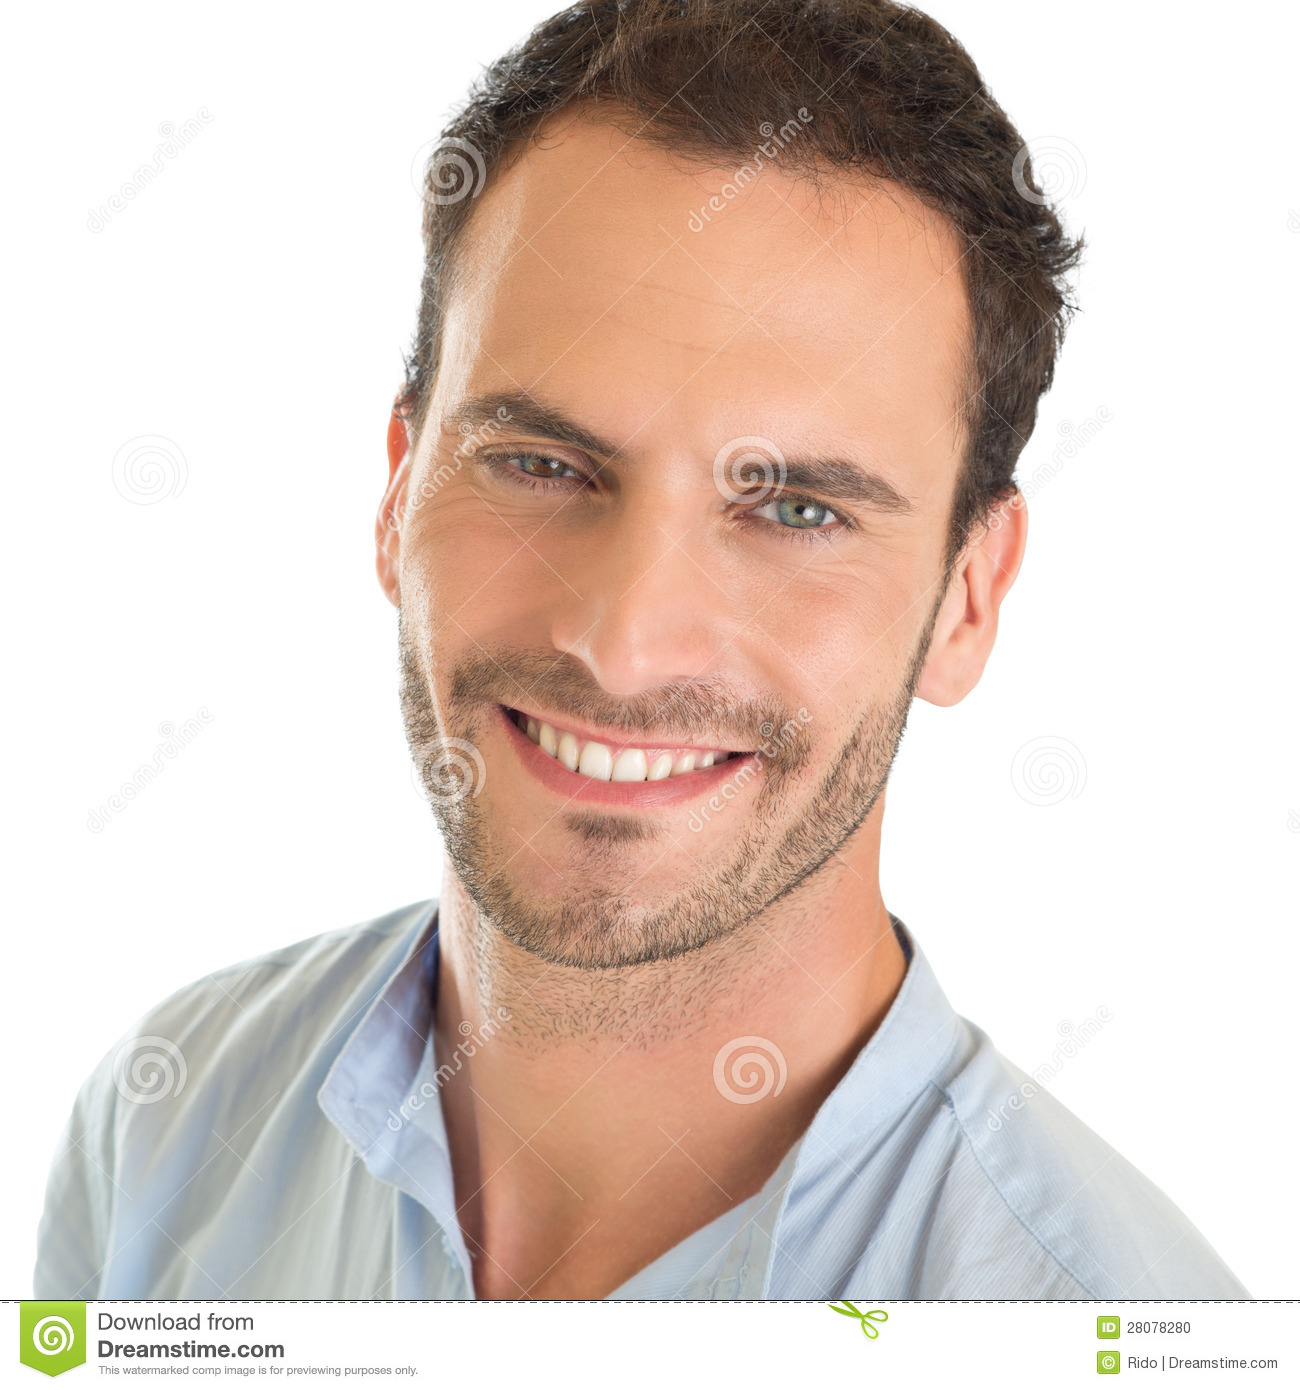 happy-smiling-man-28078280.jpg